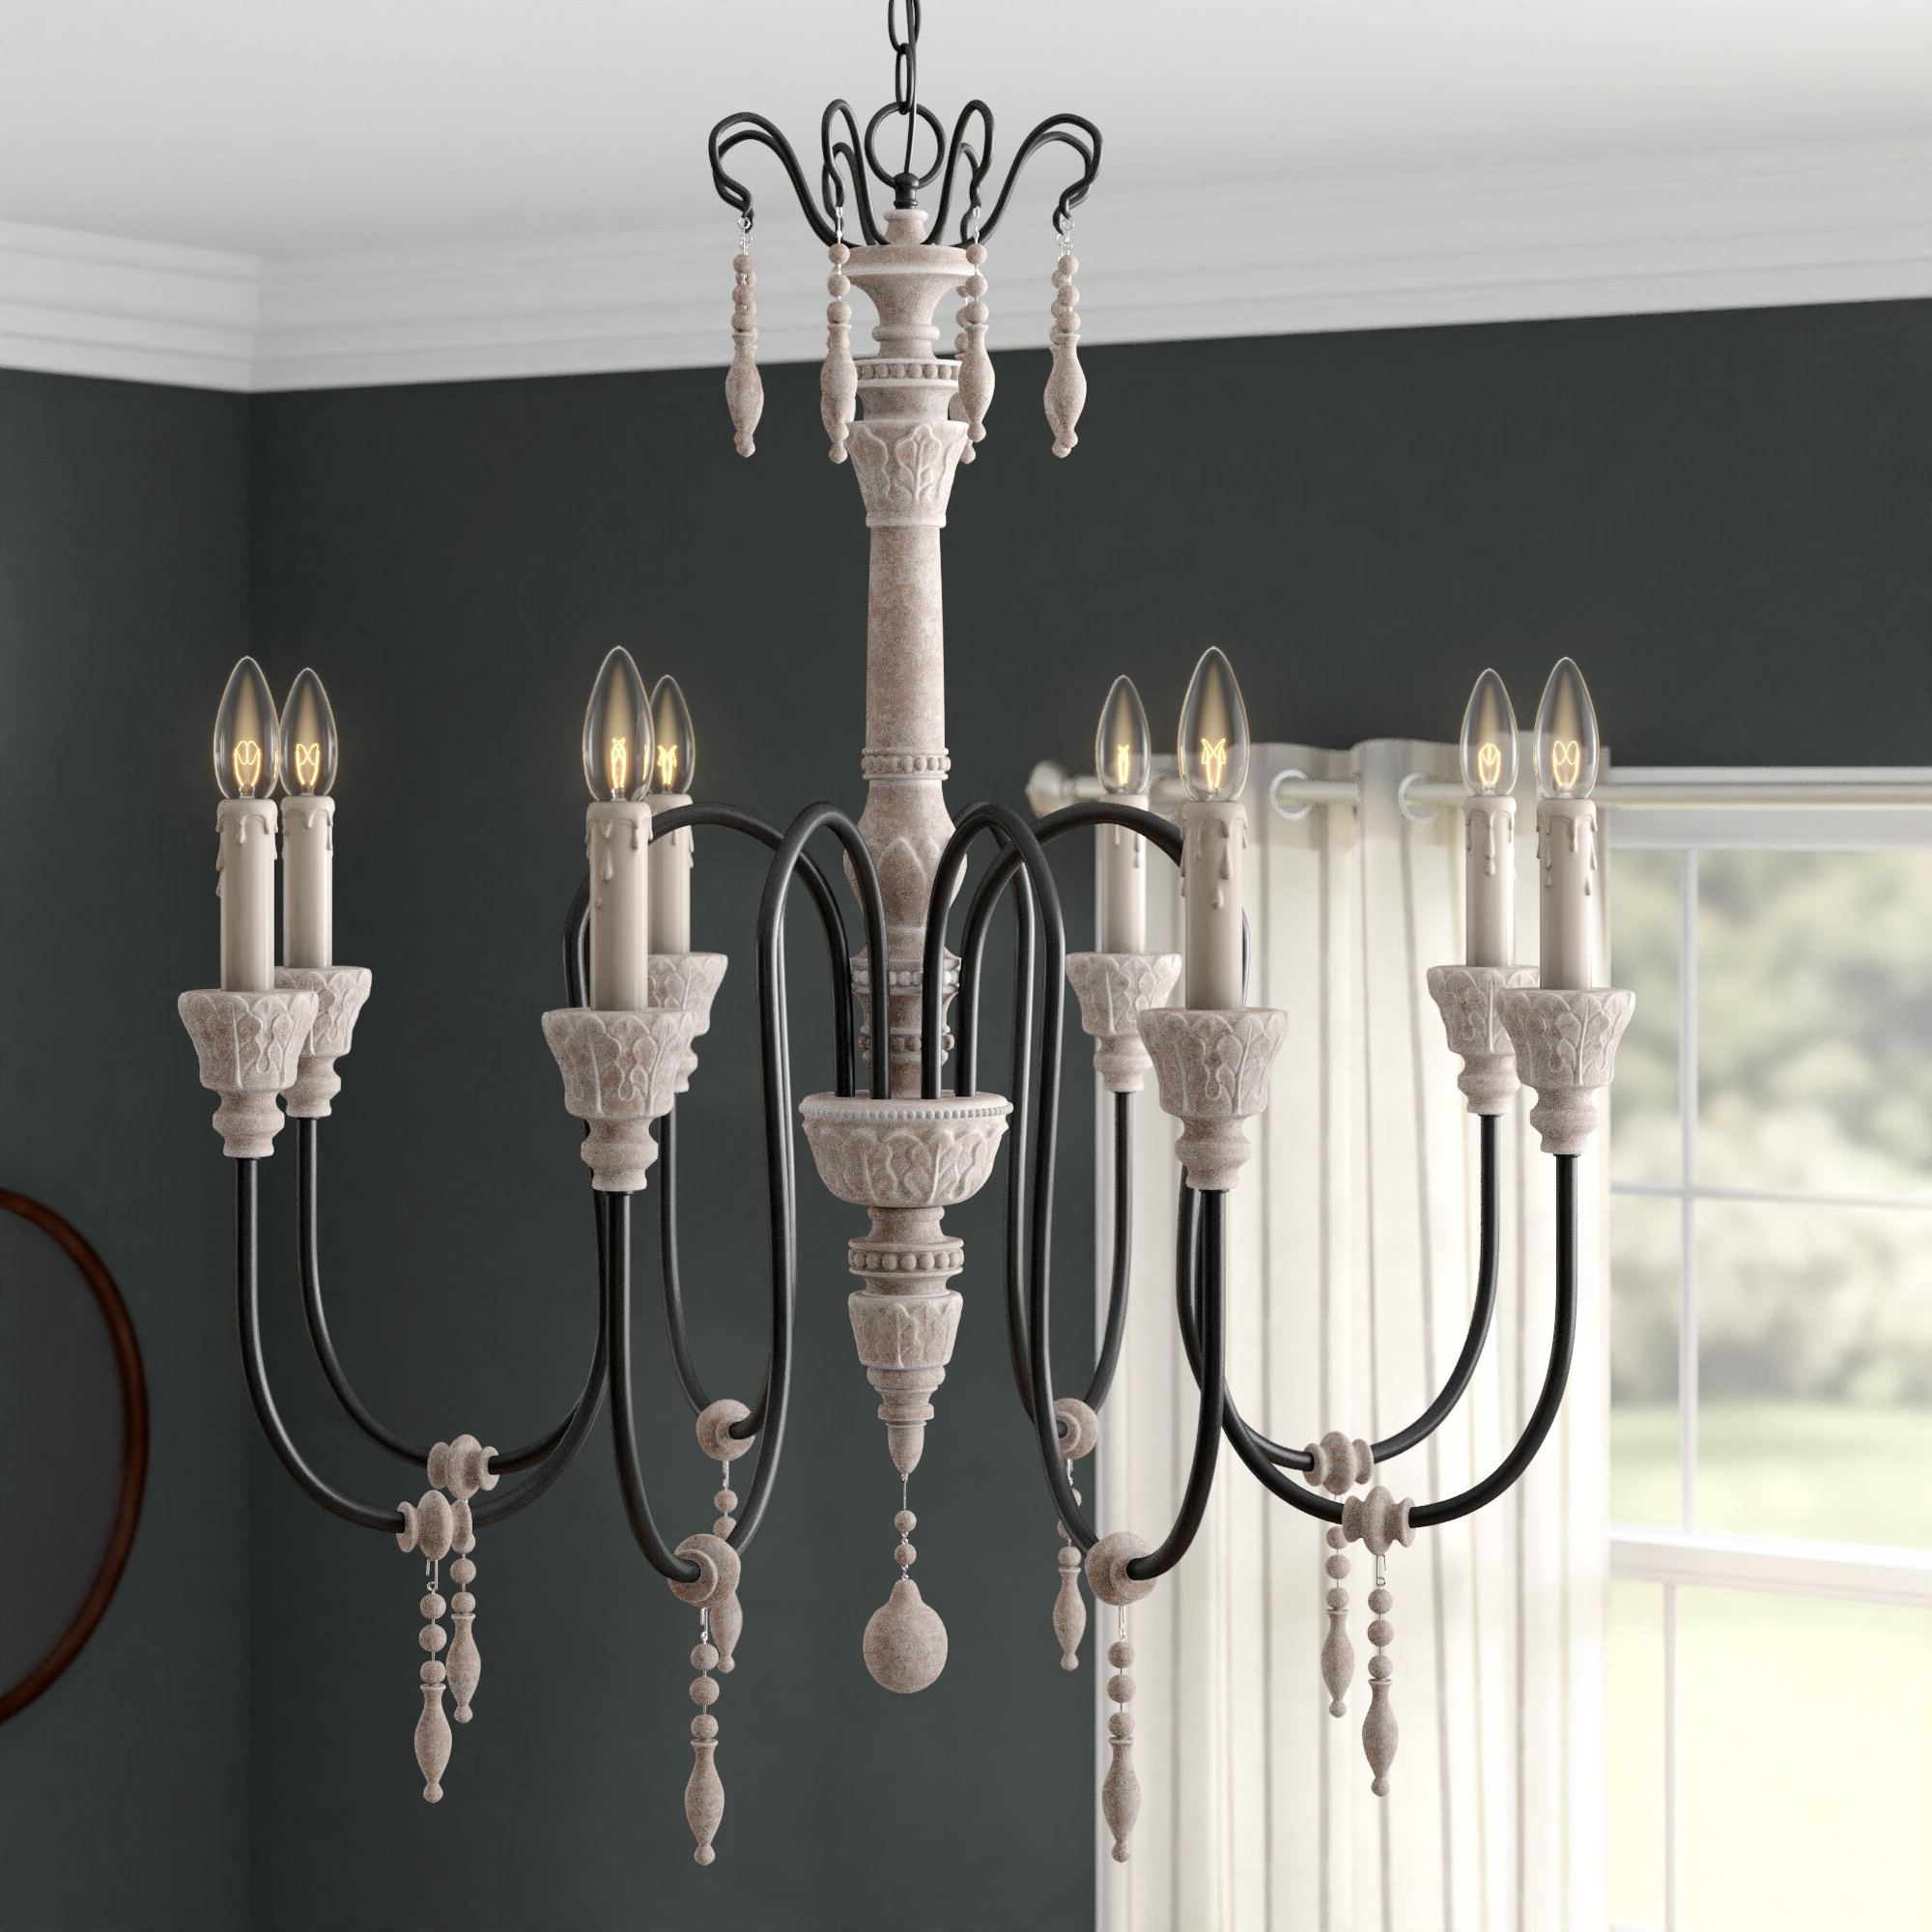 Ailsa 8 Light Candle Style Chandelier In Preferred Corneau 5 Light Chandeliers (View 9 of 25)